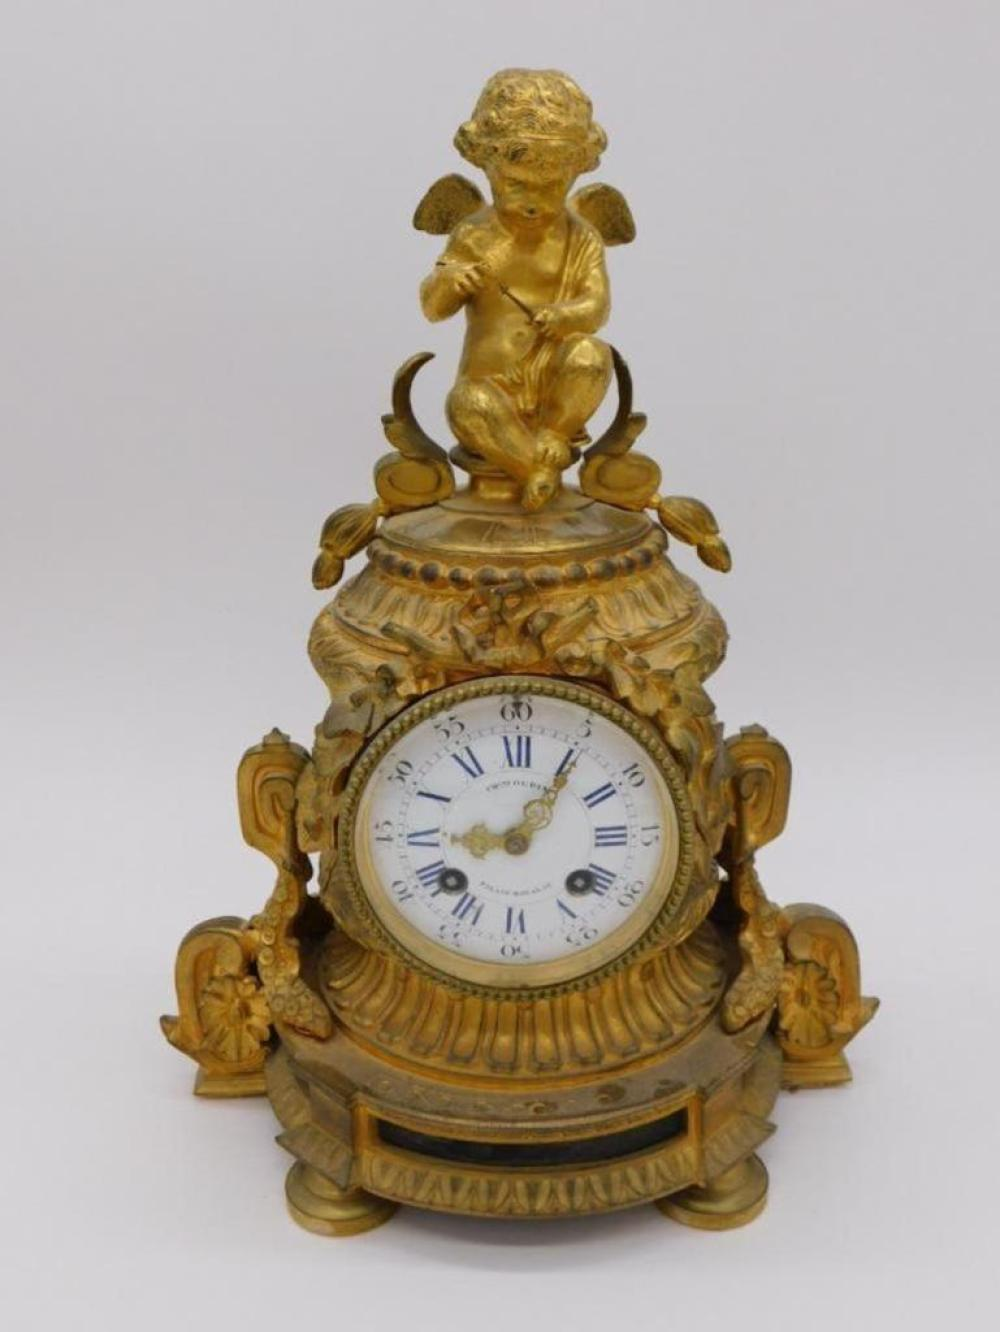 PREVIEW of Upcoming Lot: FRENCH CHARLES OUDIN CLOCK